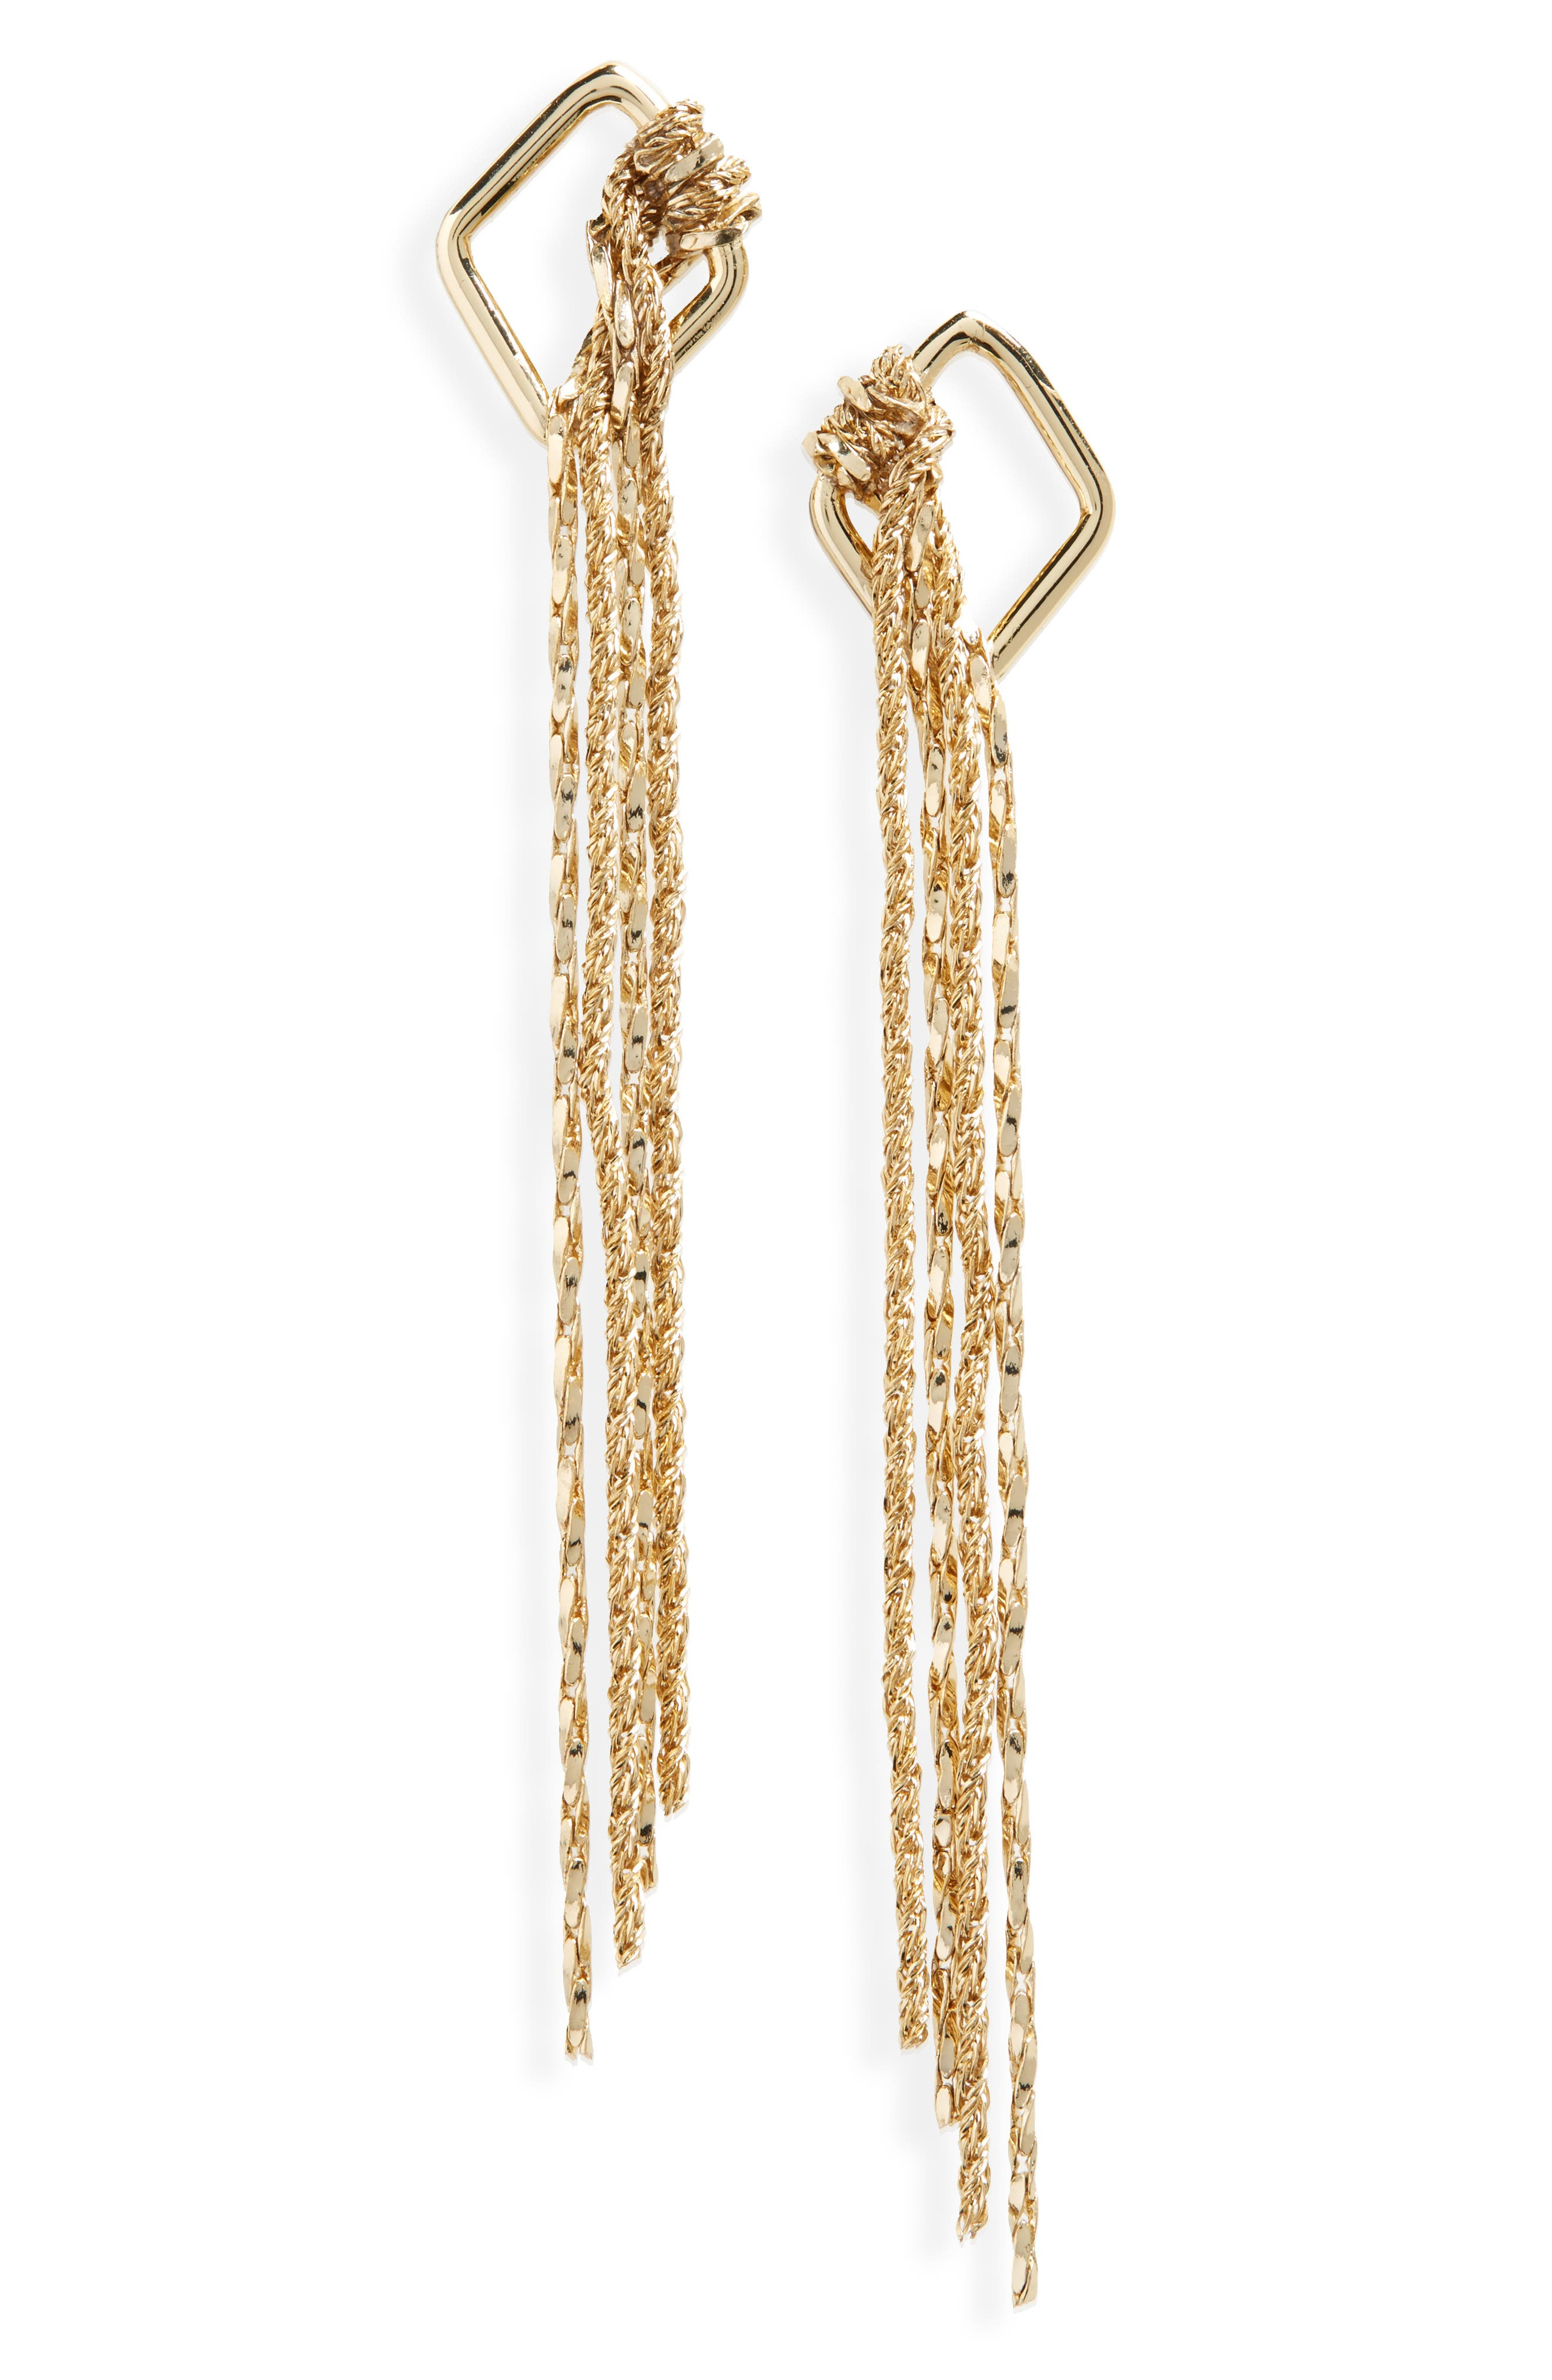 Knotted Fringe Earrings,                             Main thumbnail 1, color,                             Gold